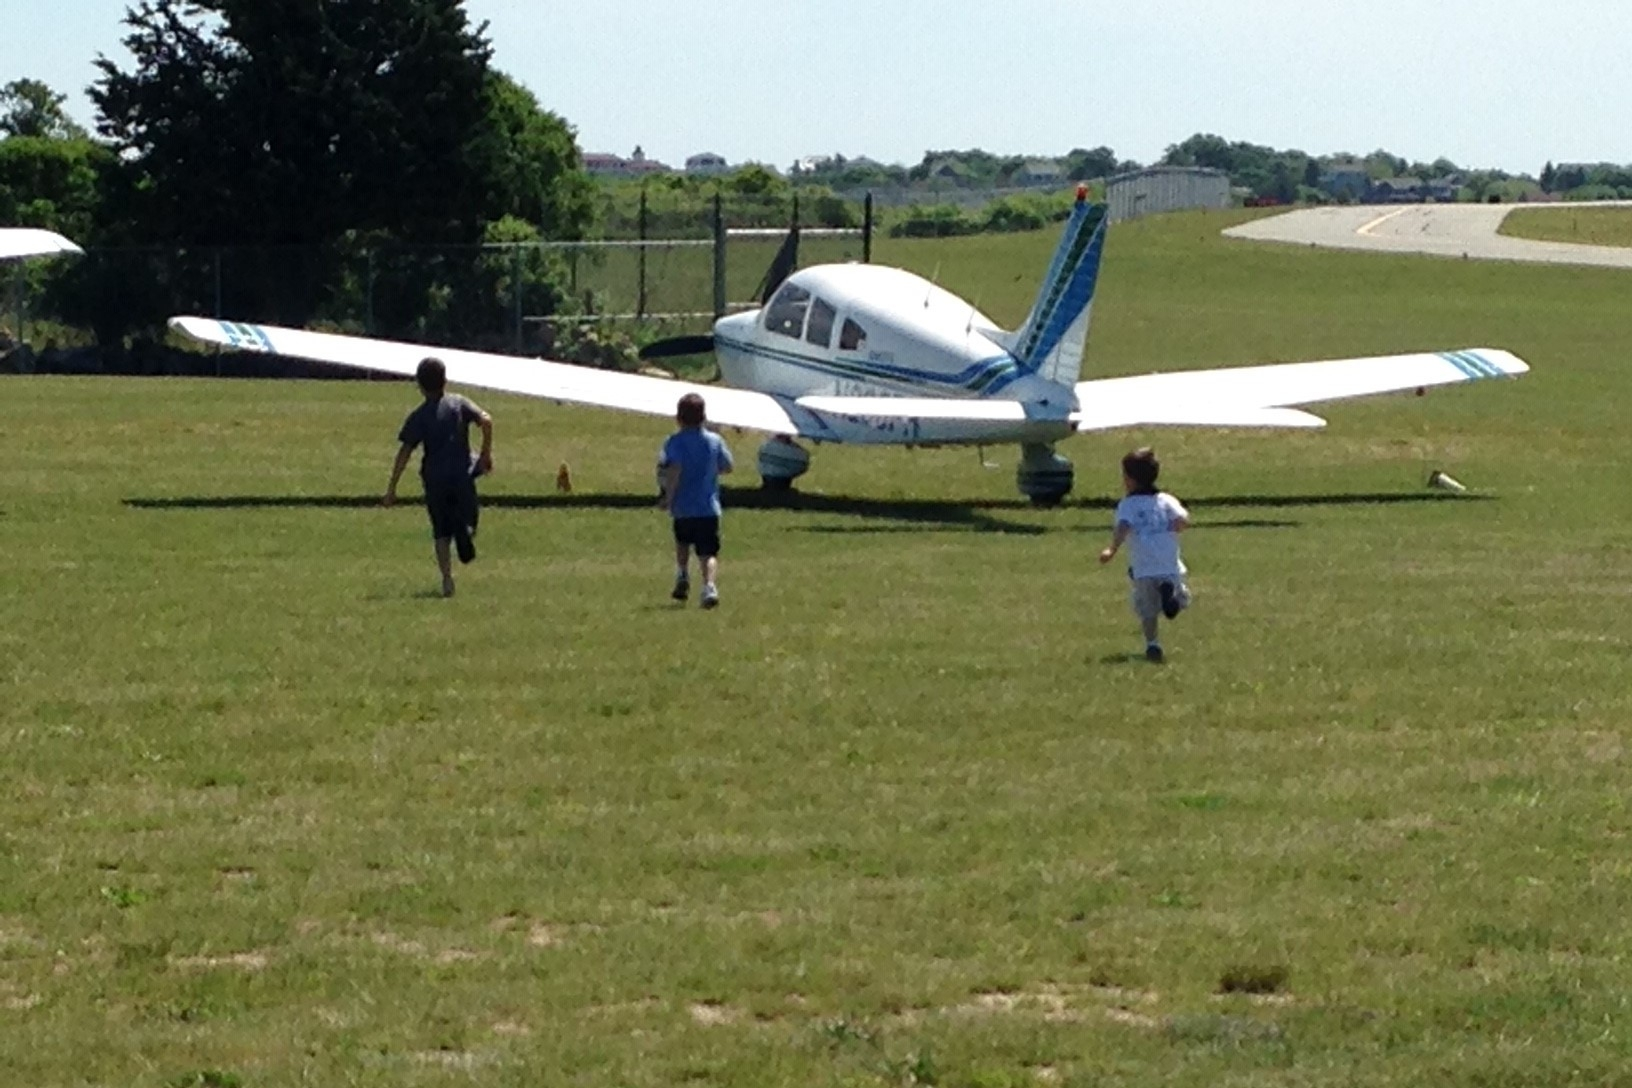 Boys running to plane - block.jpg